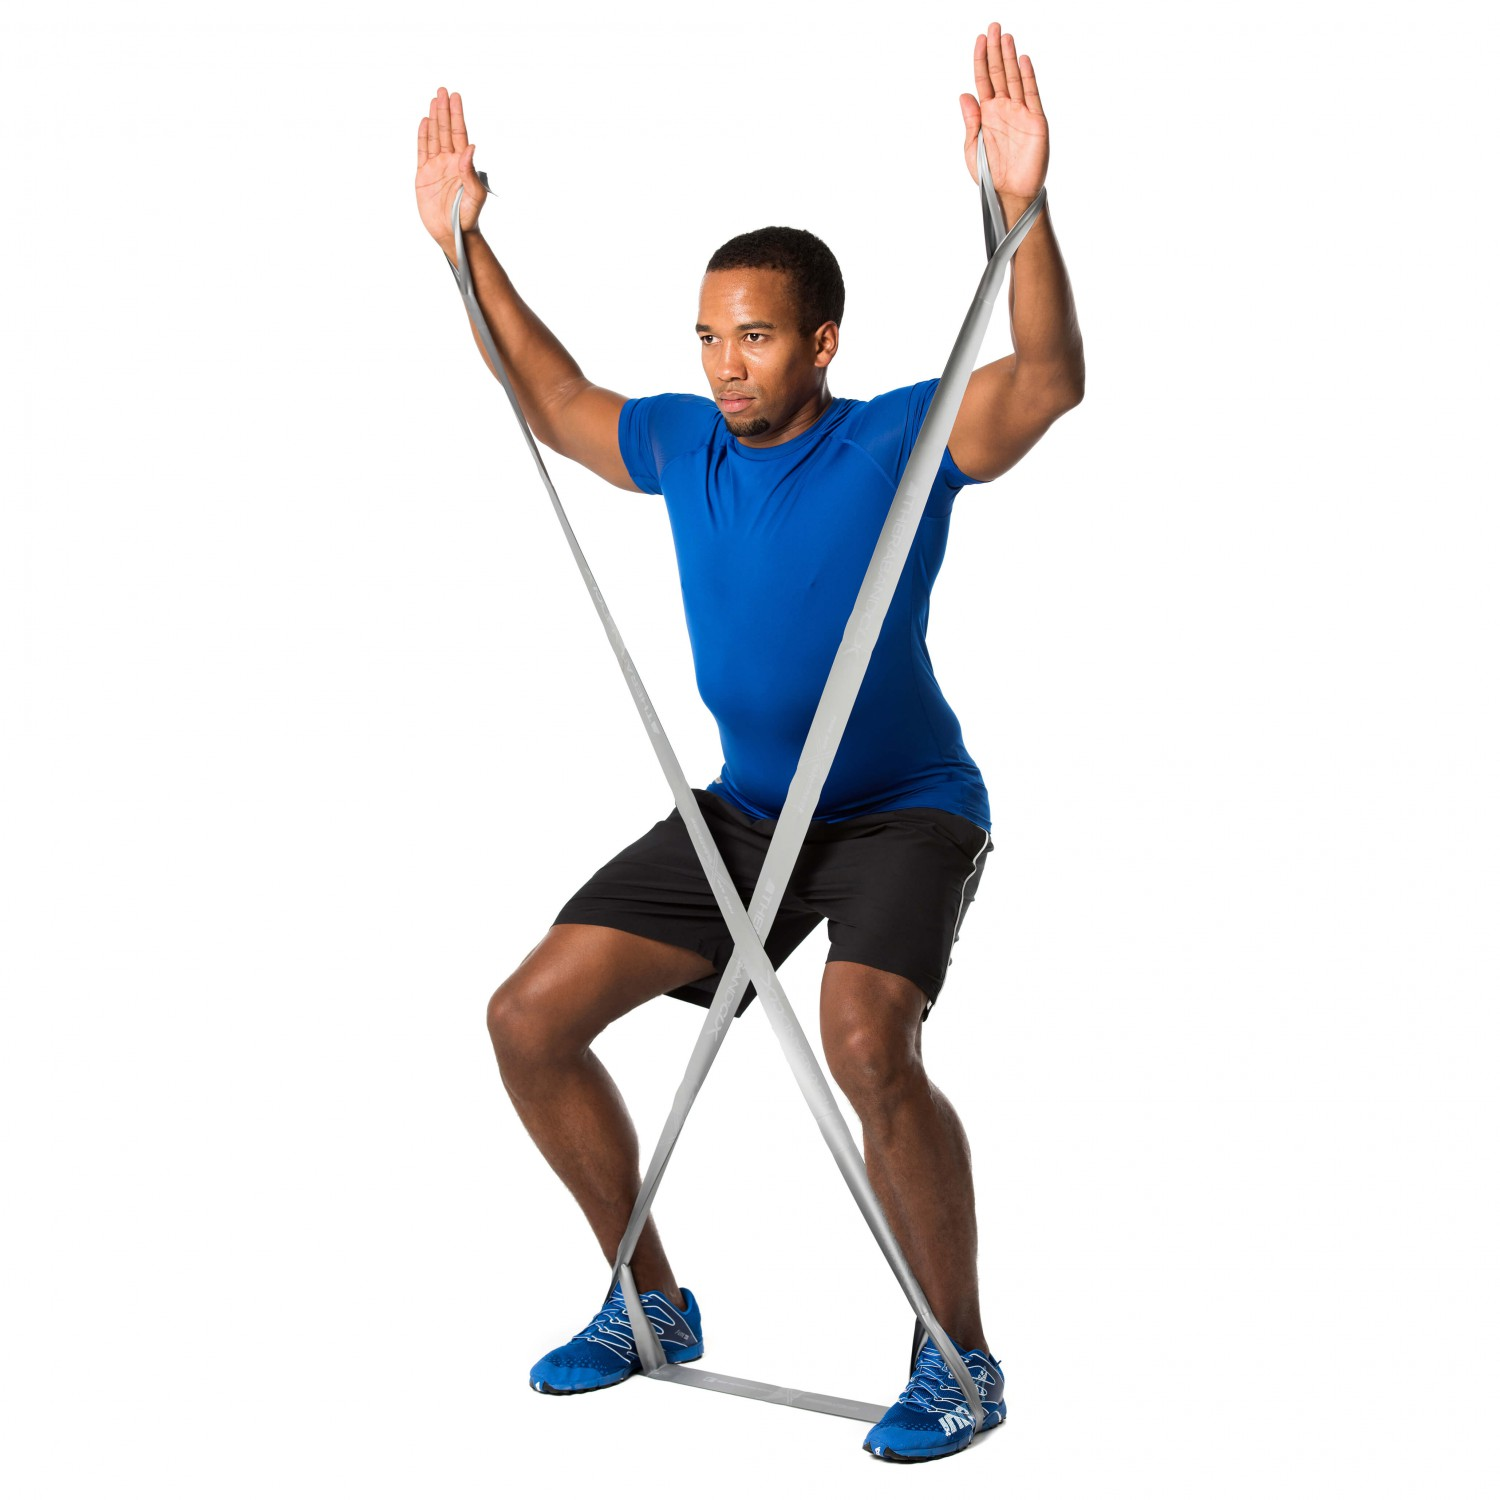 Resistance Bands Uk: Thera-Band CLX Band - Resistance Bands